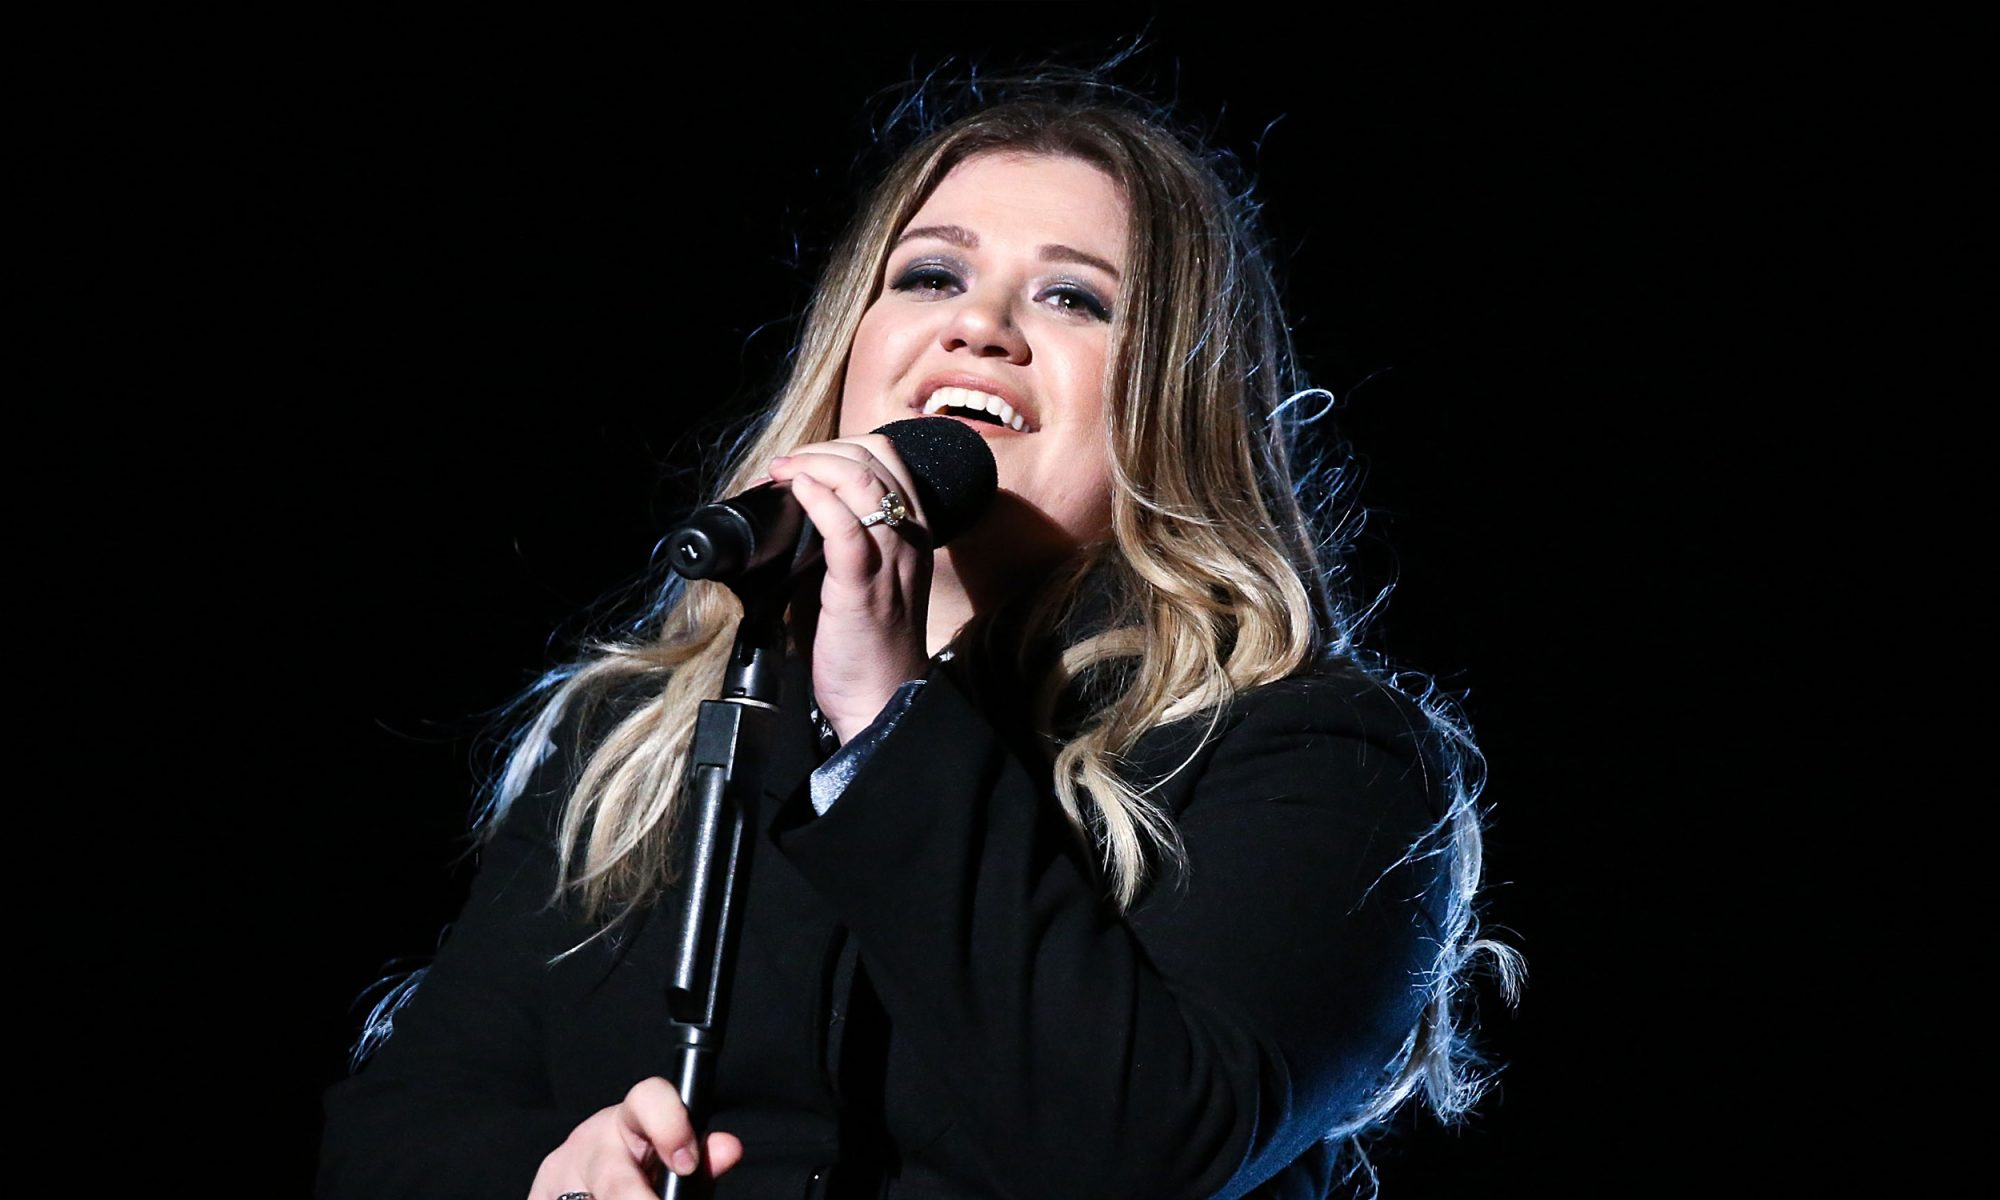 EC: People Are Mad at Kelly Clarkson for Feeding Her Child Nutella Because Moms Can't Win